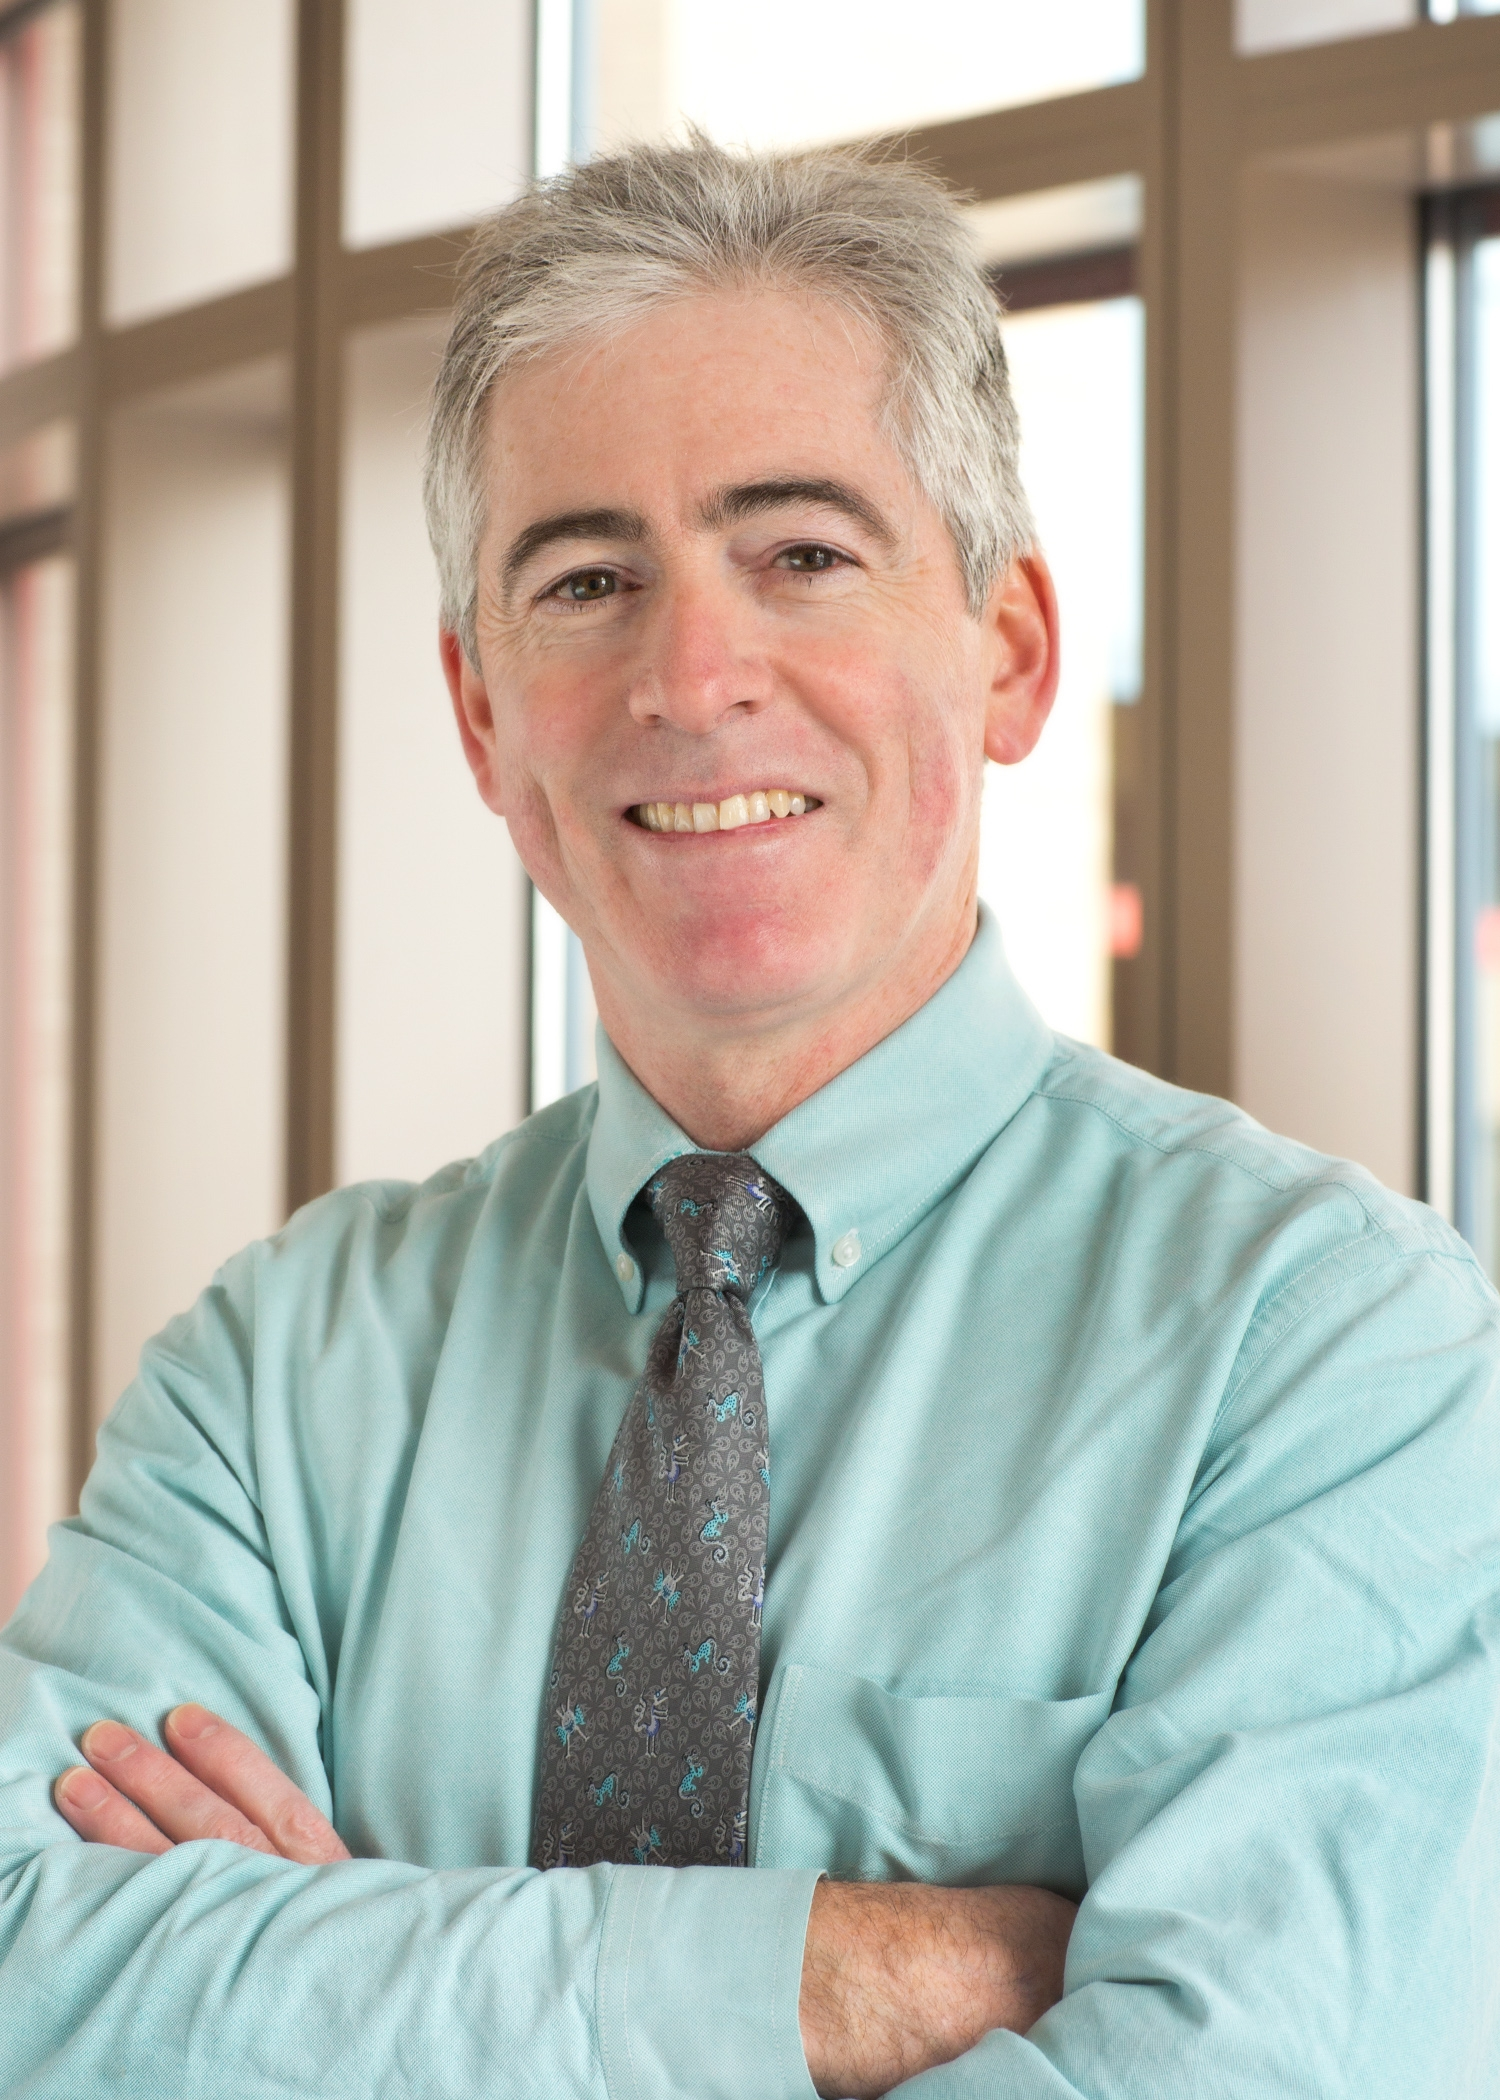 Timothy McAlindon, MD is the Rheumatologist-in-Chief at Tufts Medical Center in Boston.